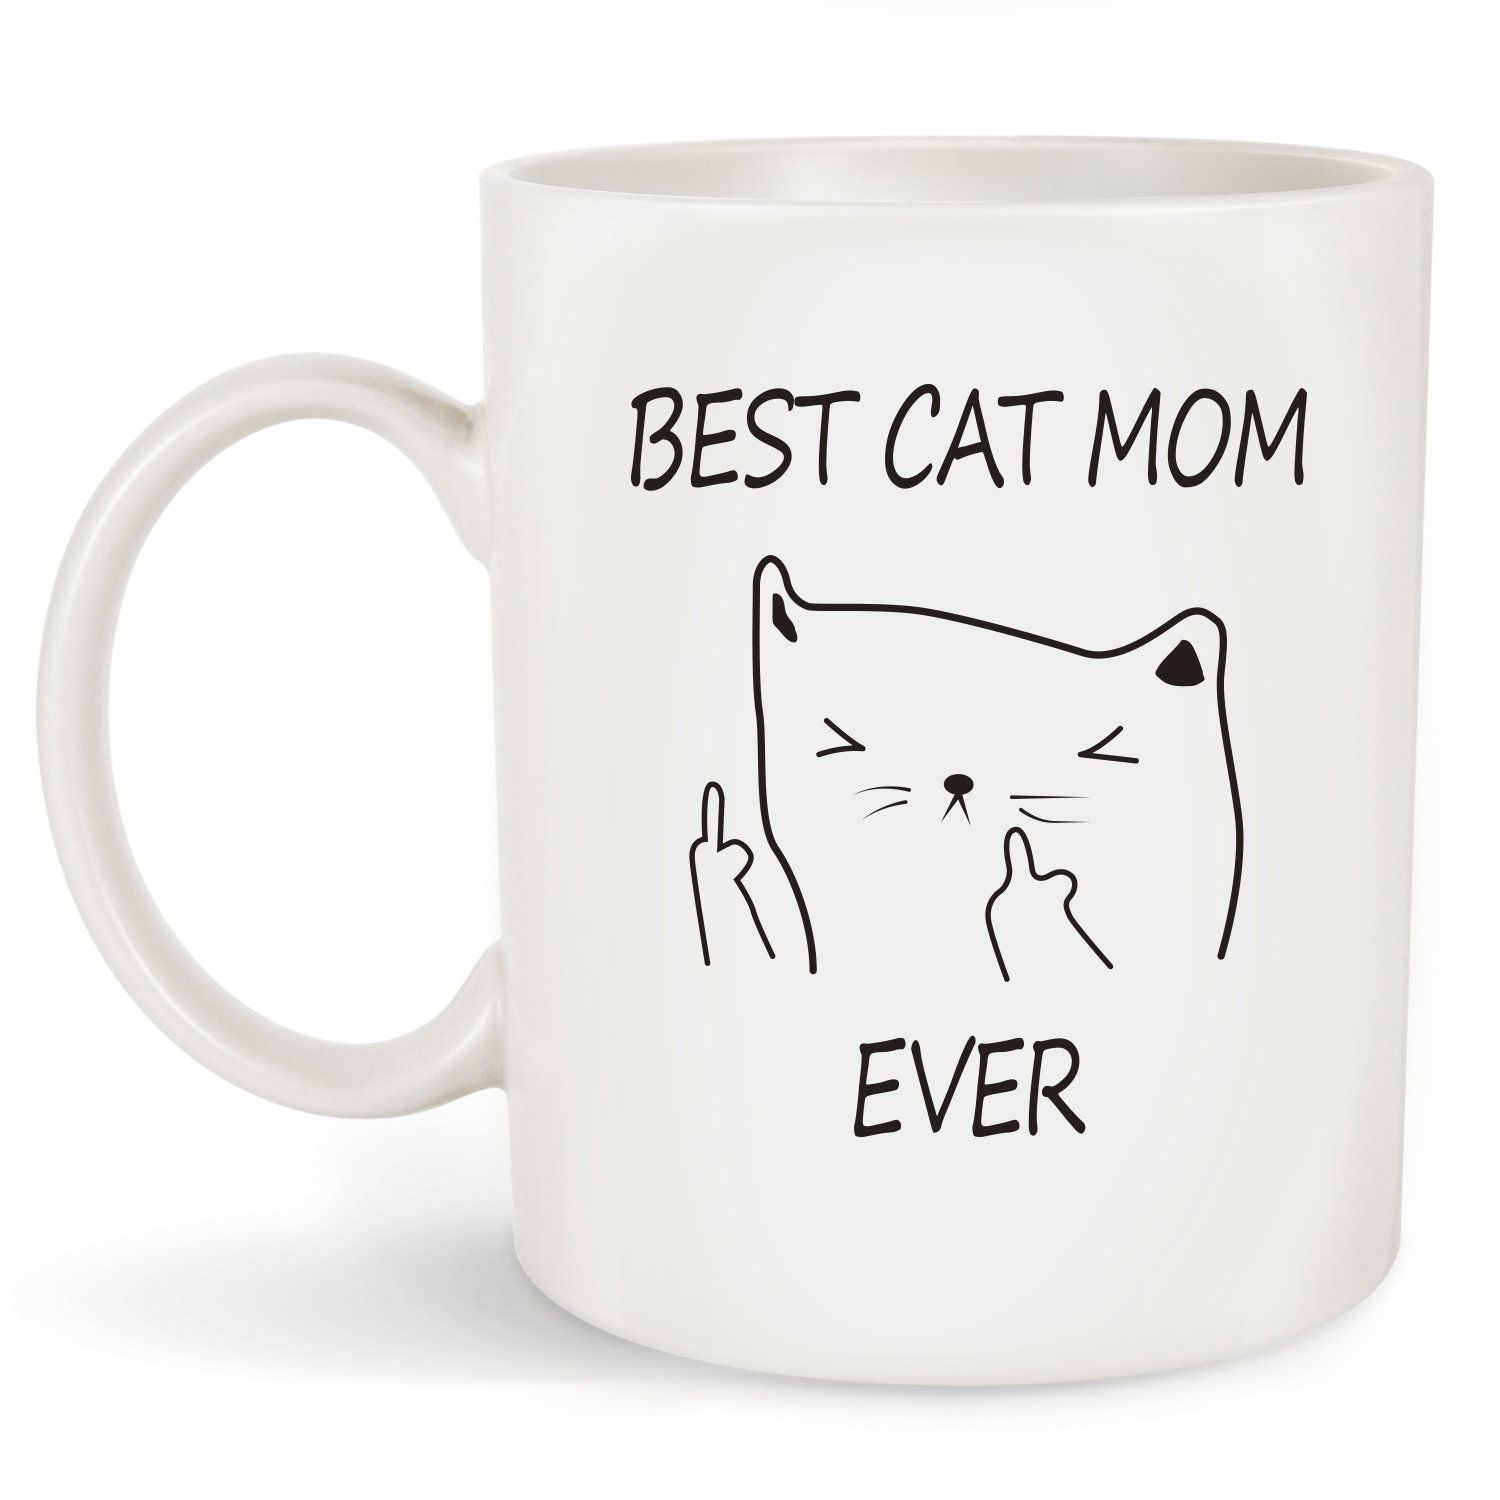 Funny Cat Mom Coffee Mug for Cat Lovers 11 Oz Best Cat Mom Ever Best Cute Idea for Mom Cup White